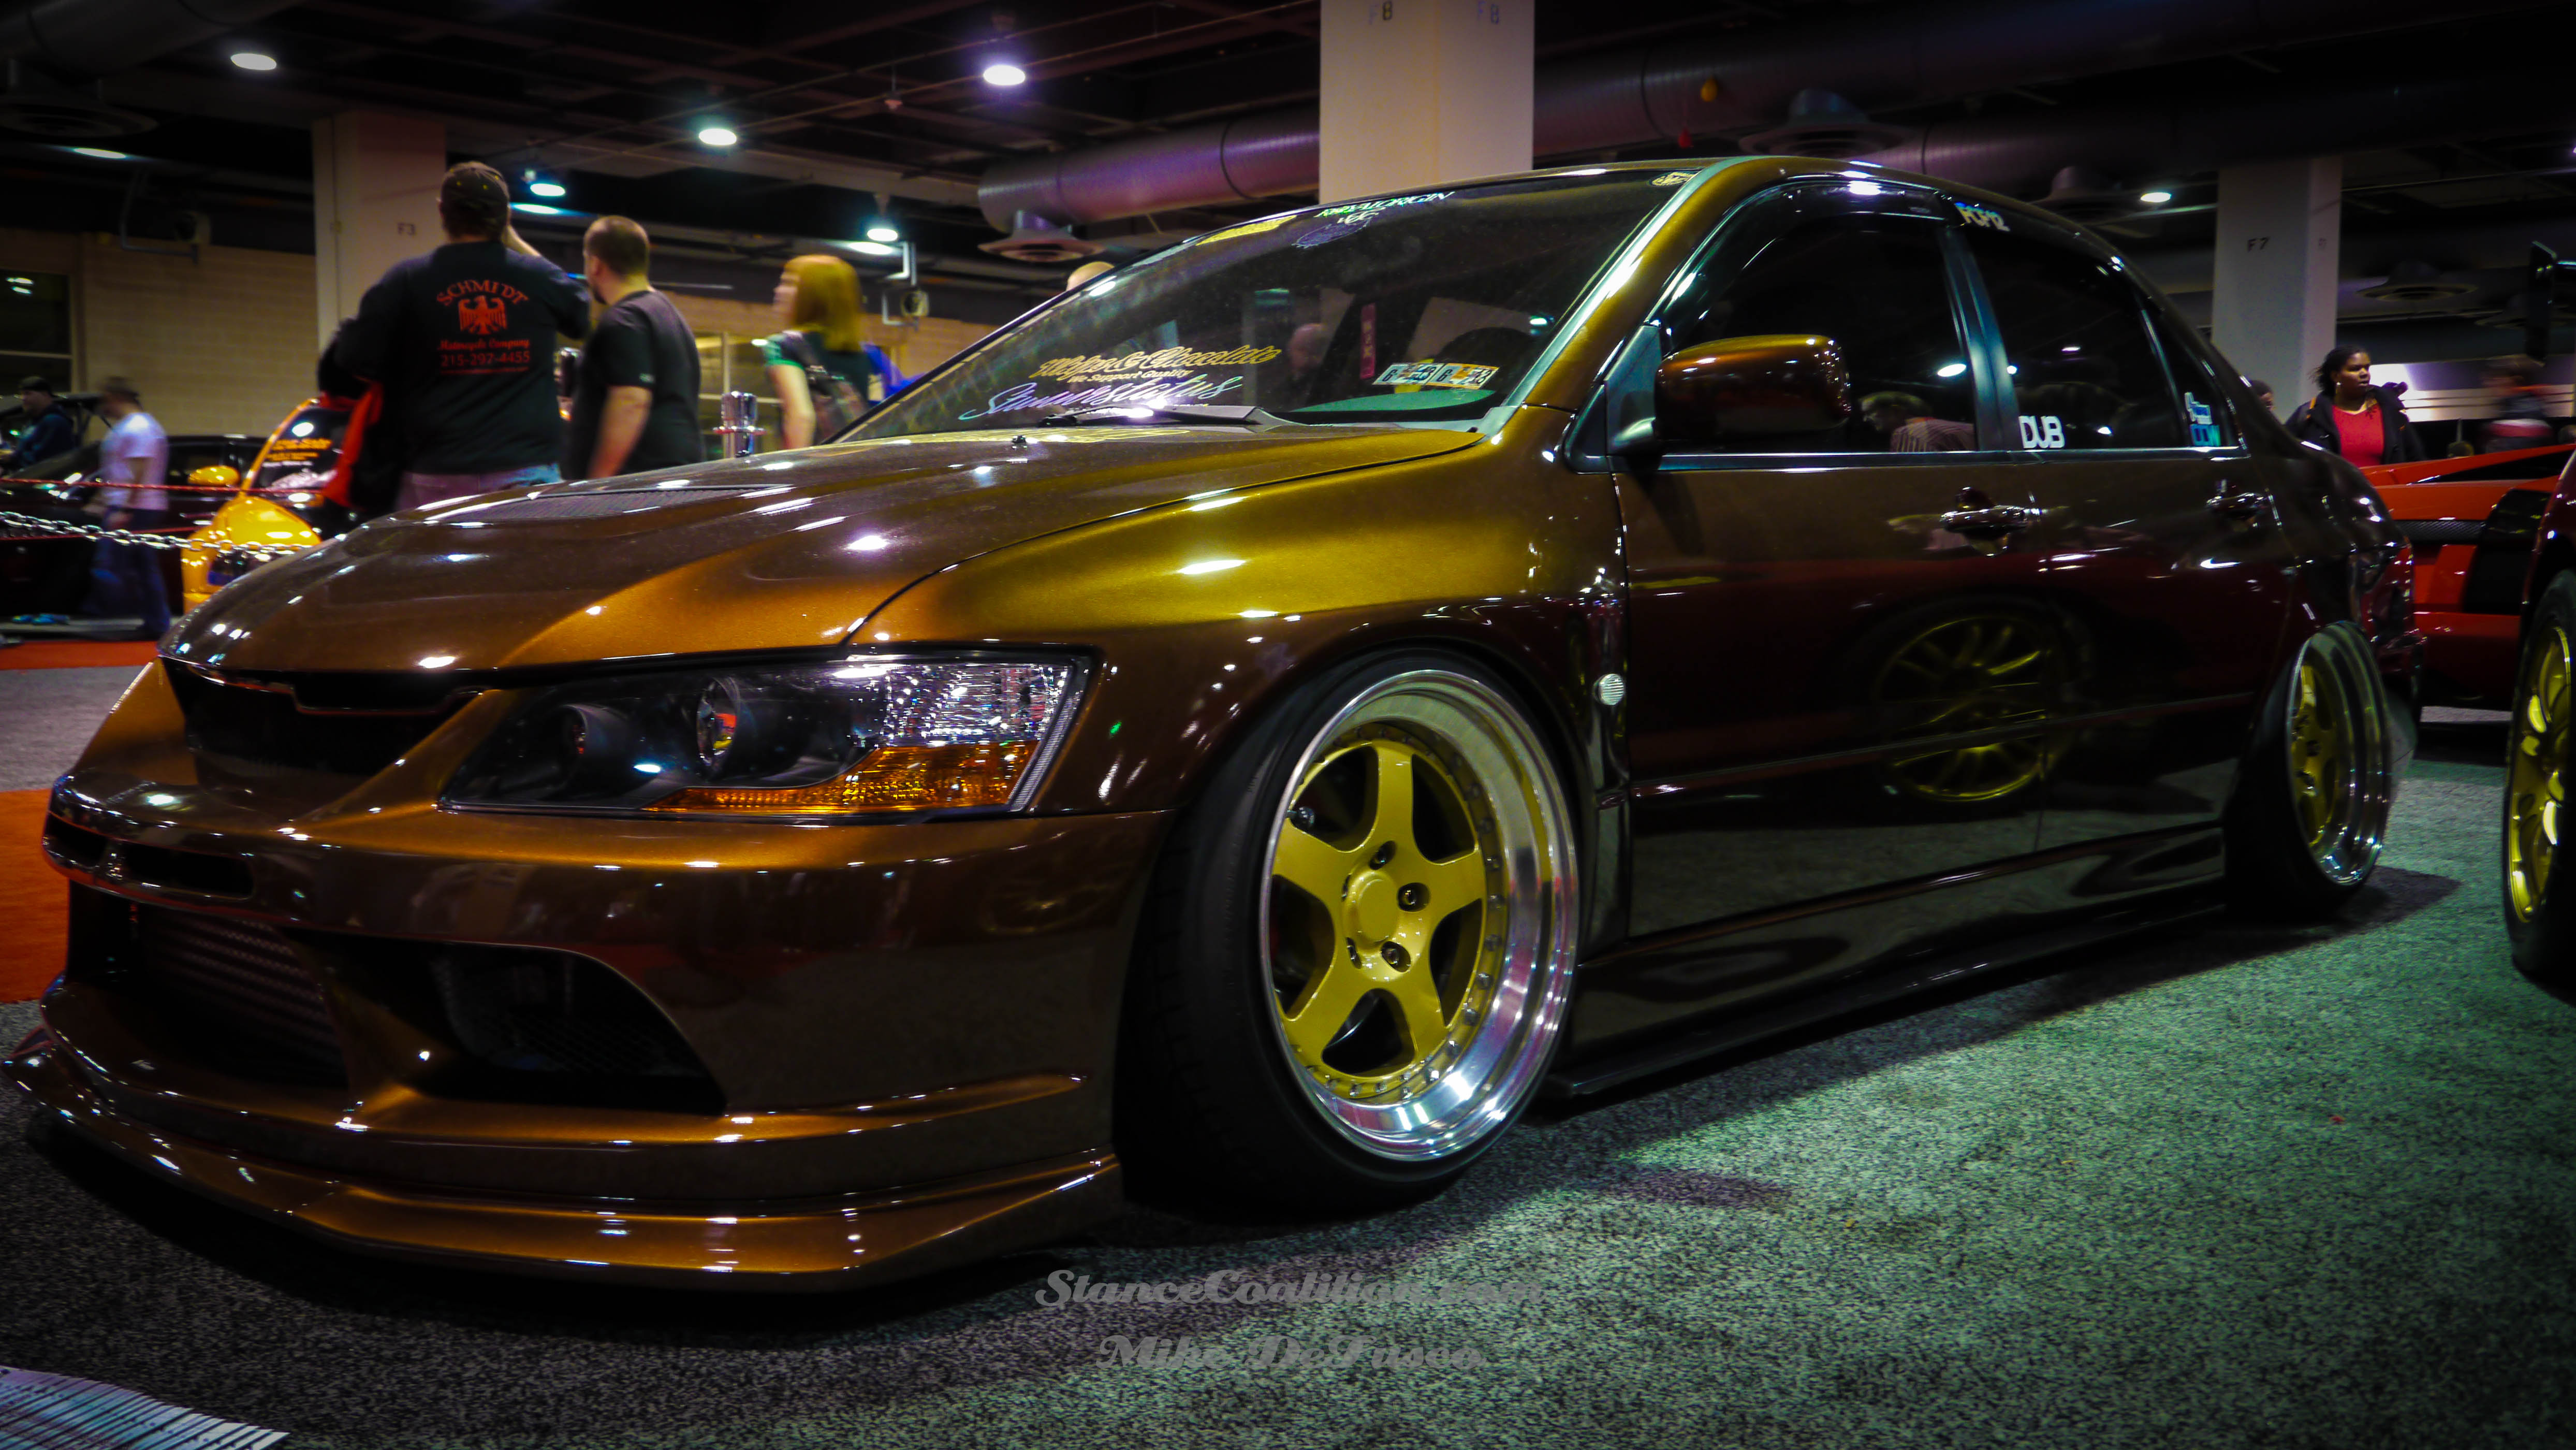 Philly Car Show: Philly Auto Show 2013